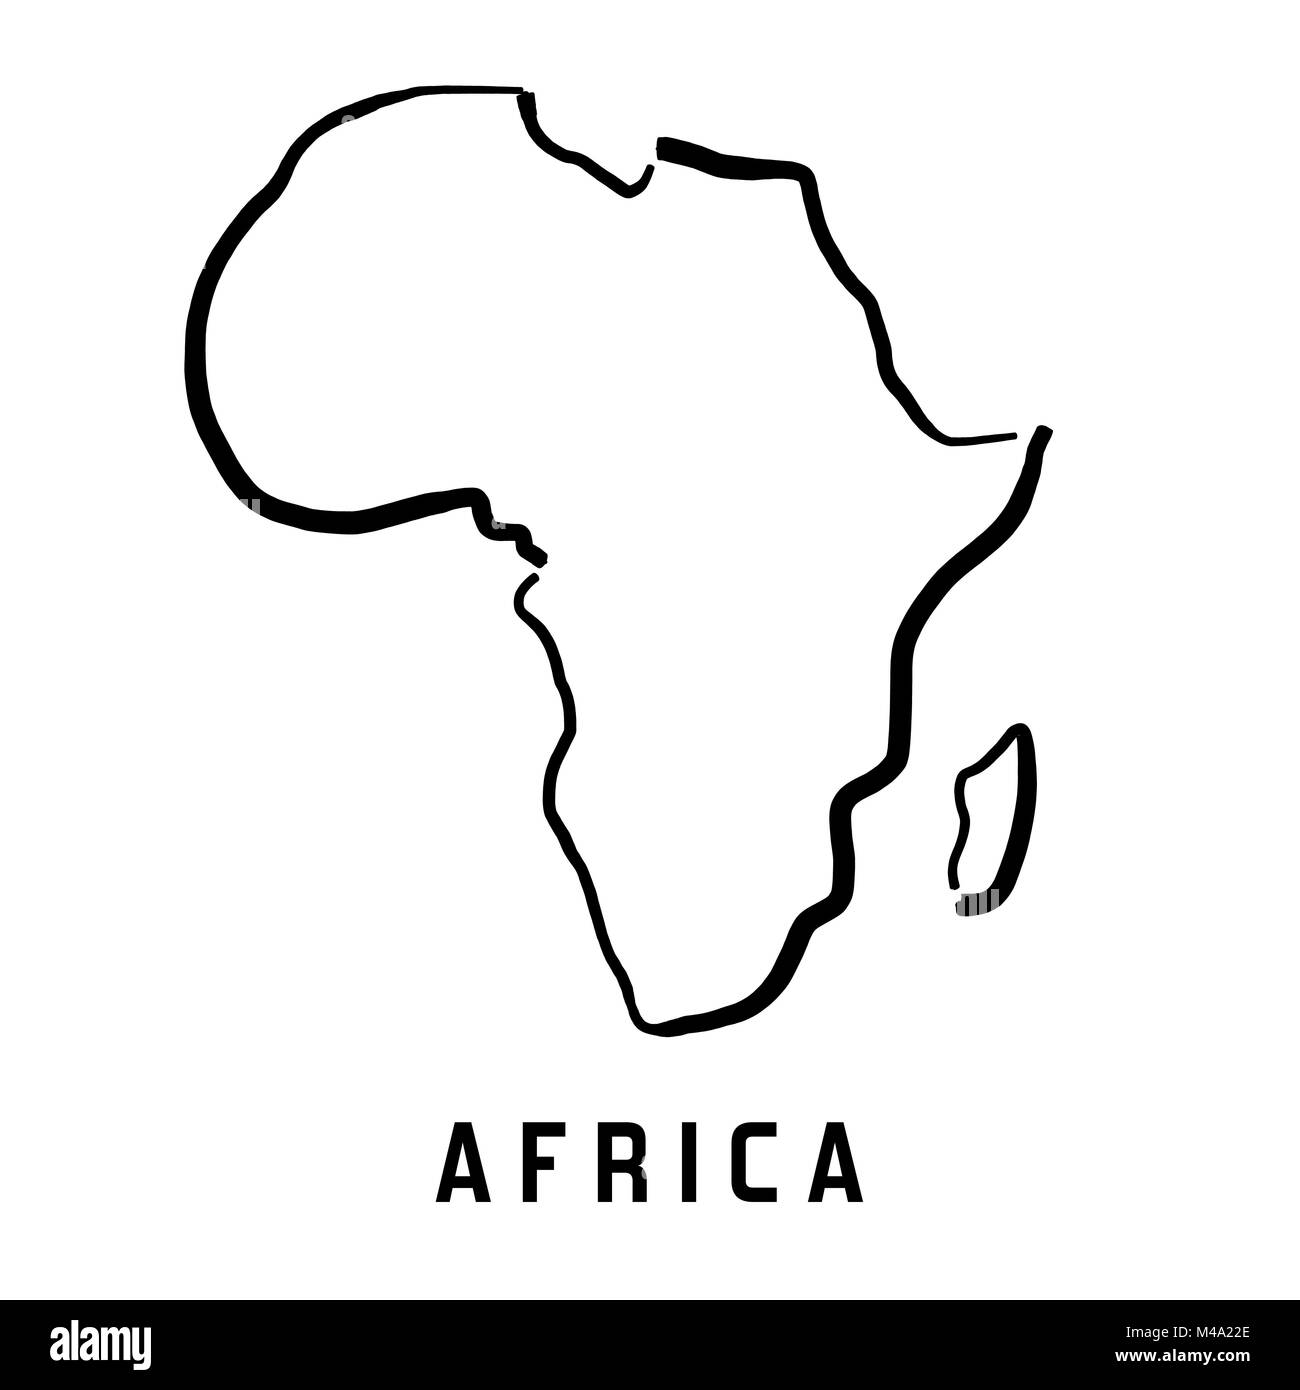 Shape Of Africa Map.Africa Simple Map Outline Smooth Simplified Continent Shape Map